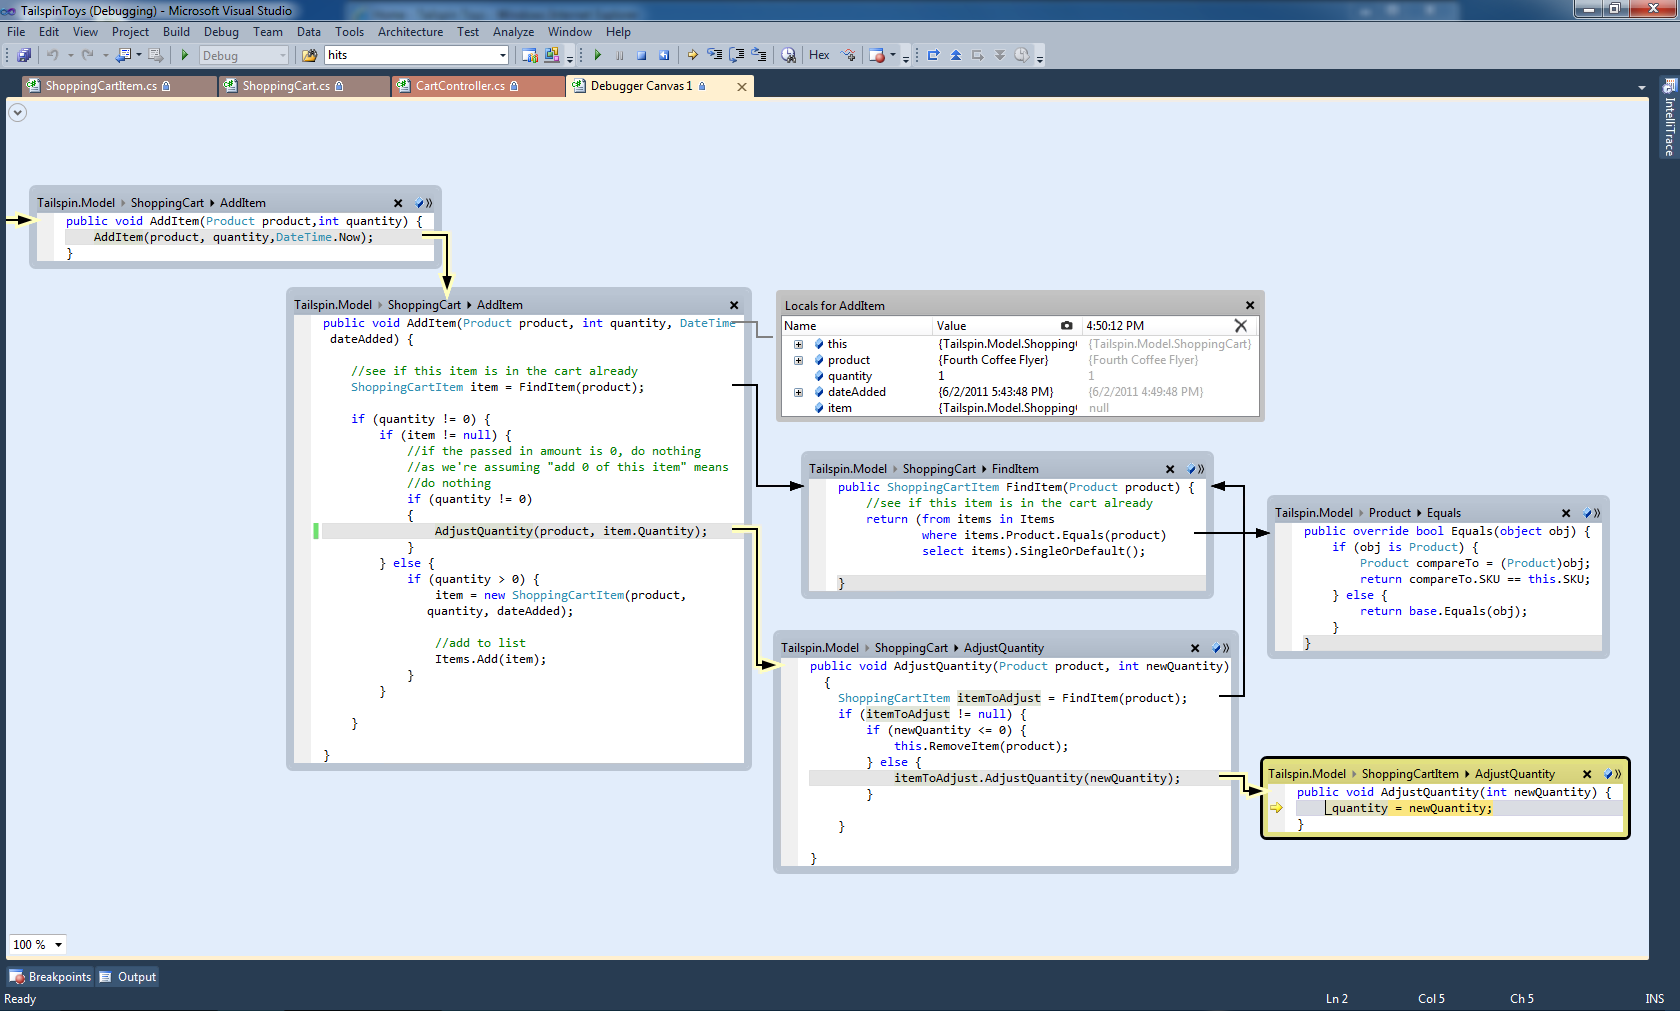 Debugger canvas feature from Visual Studio 2010